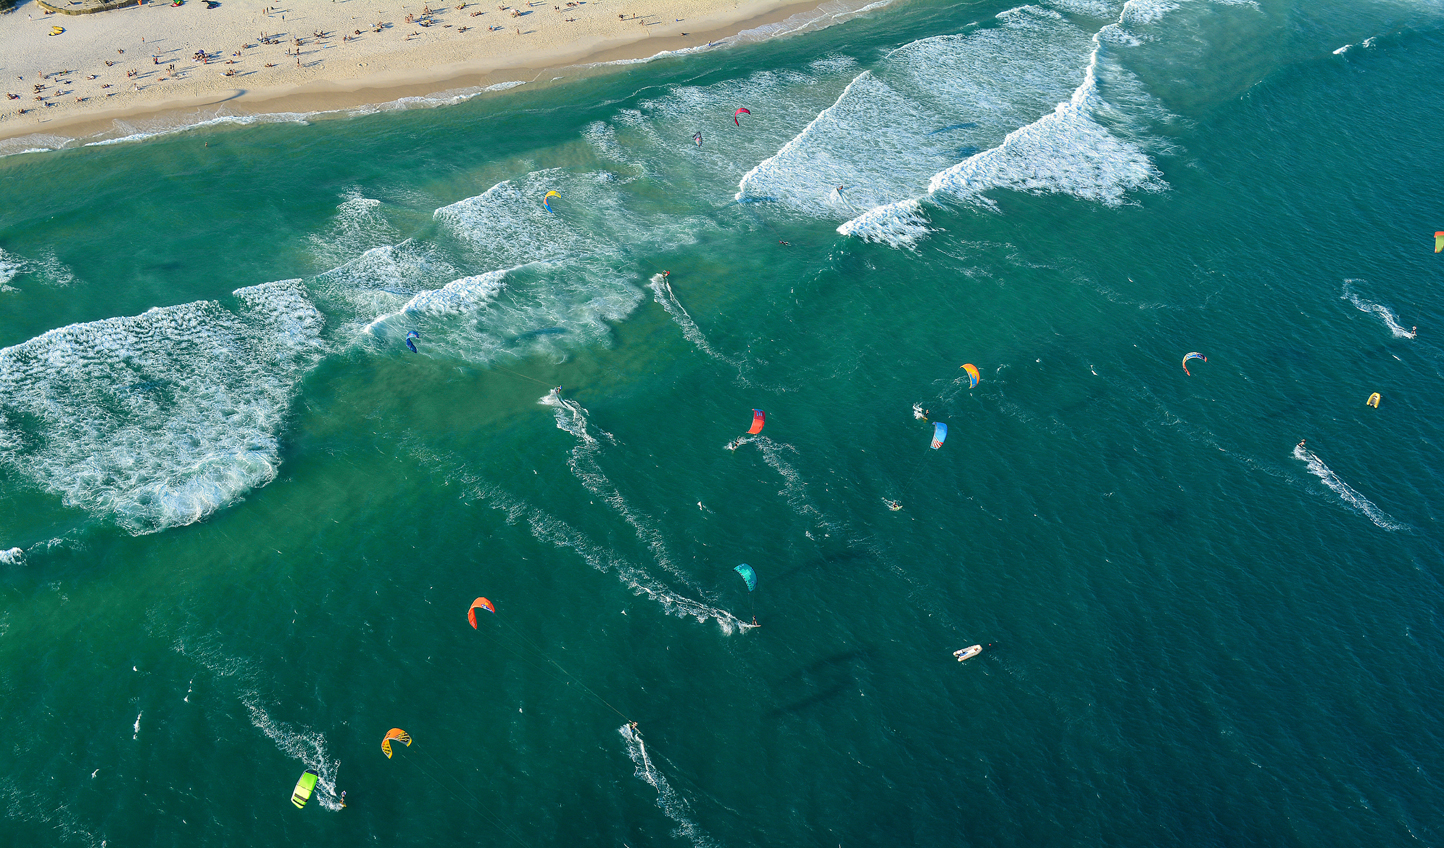 Head into the waves for a spot of kite surfing